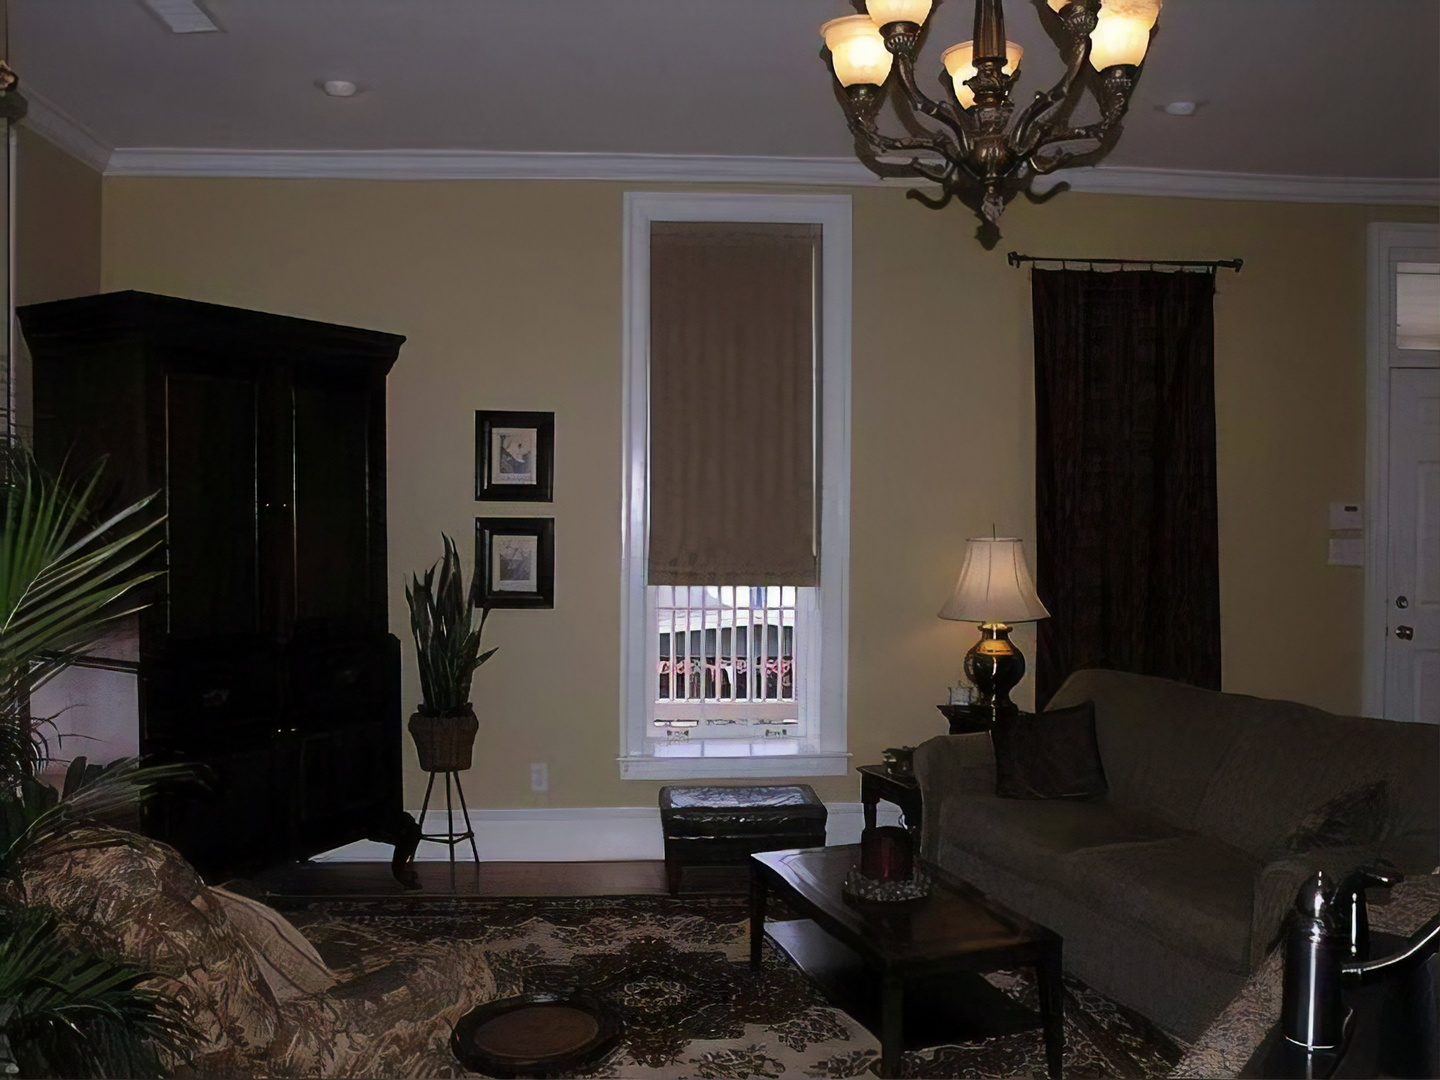 A living room filled with furniture and a fireplace at Court Square Inn Bed & Breakfast.